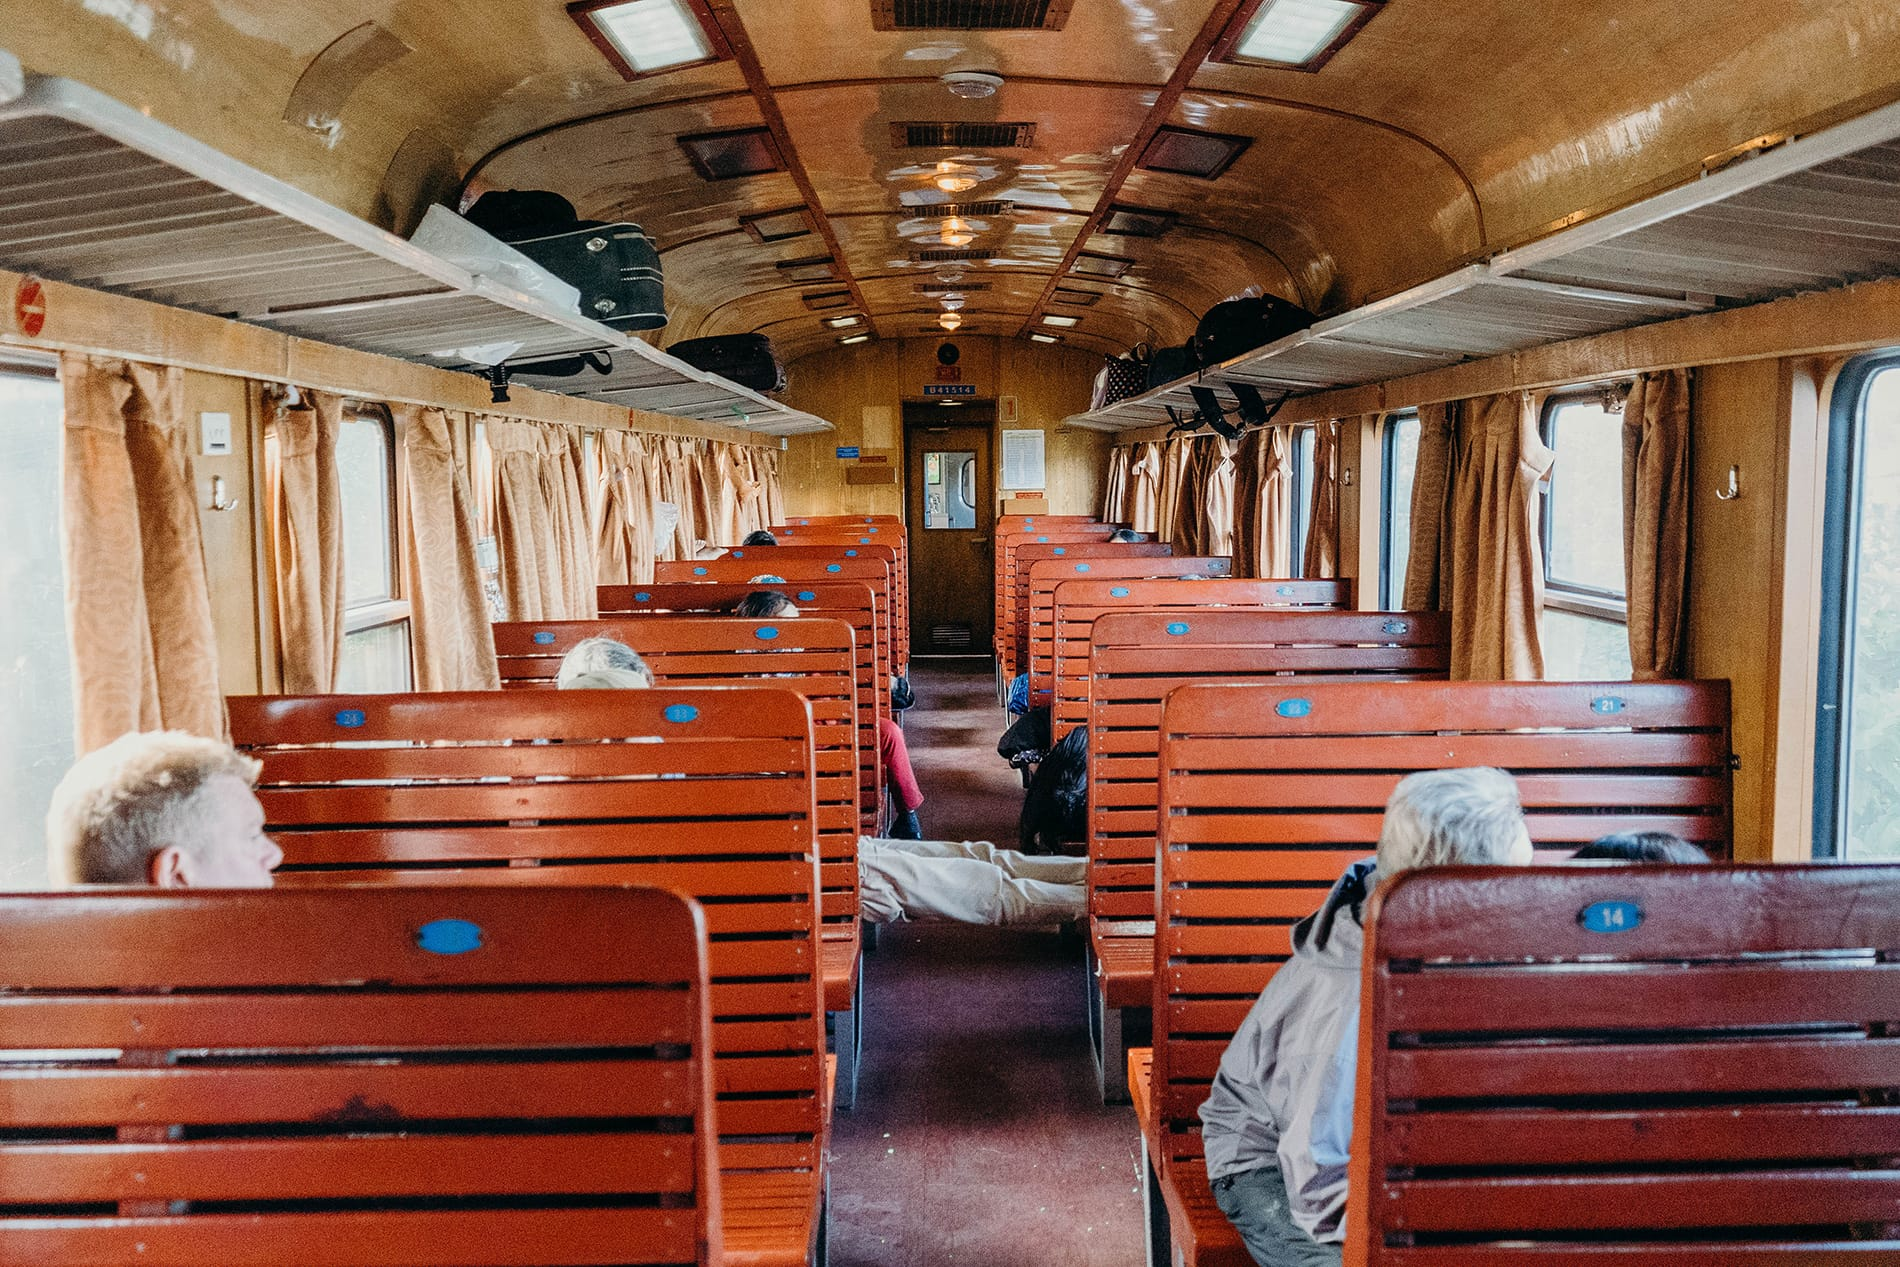 Old wooden train carriage